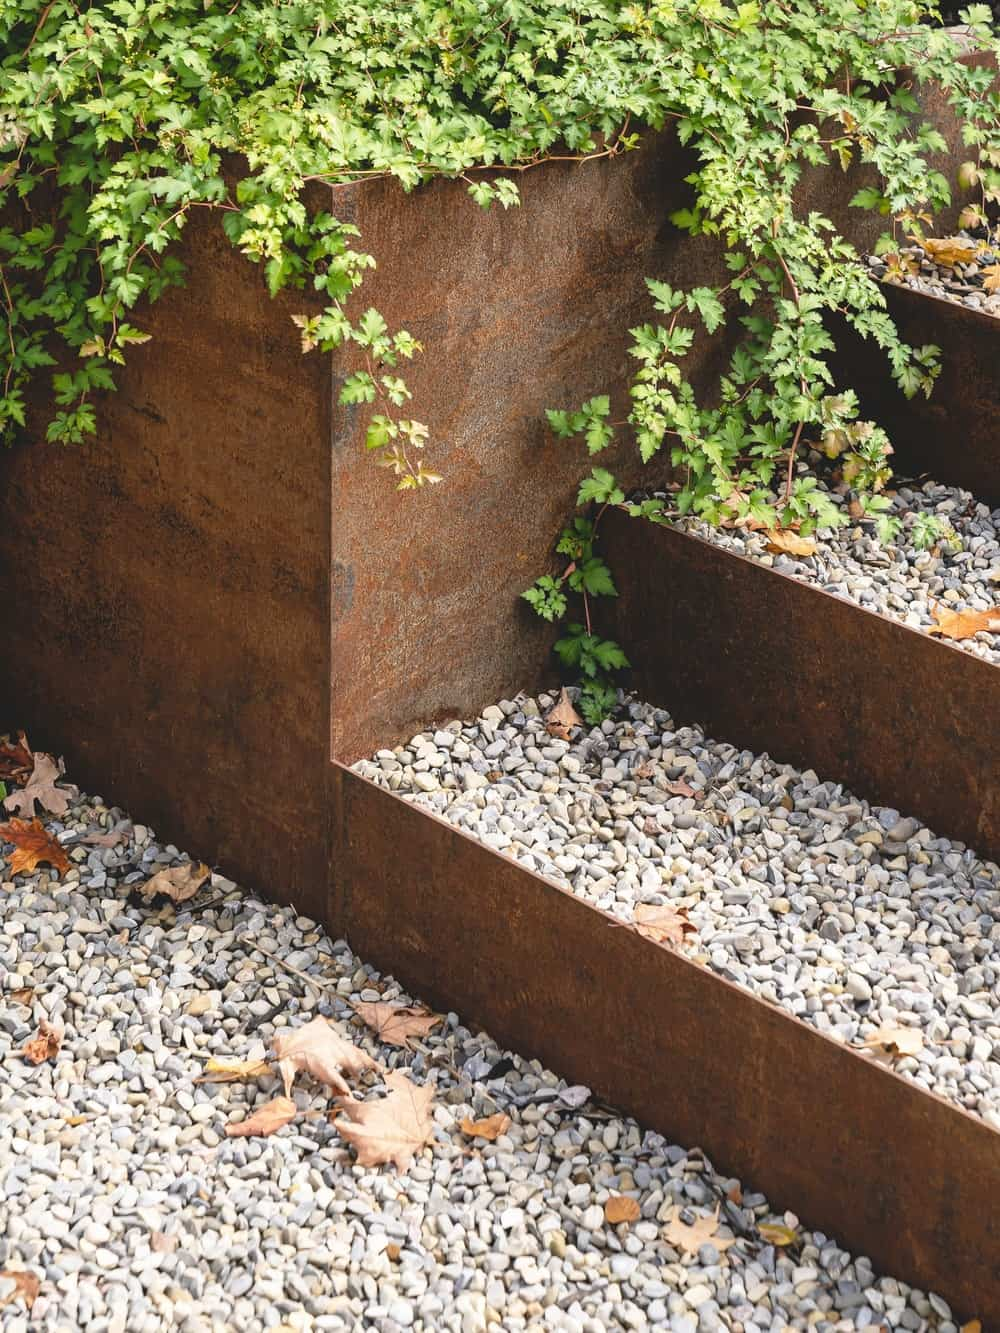 This close look at the steps outside the house with gravel and plants on the planters.